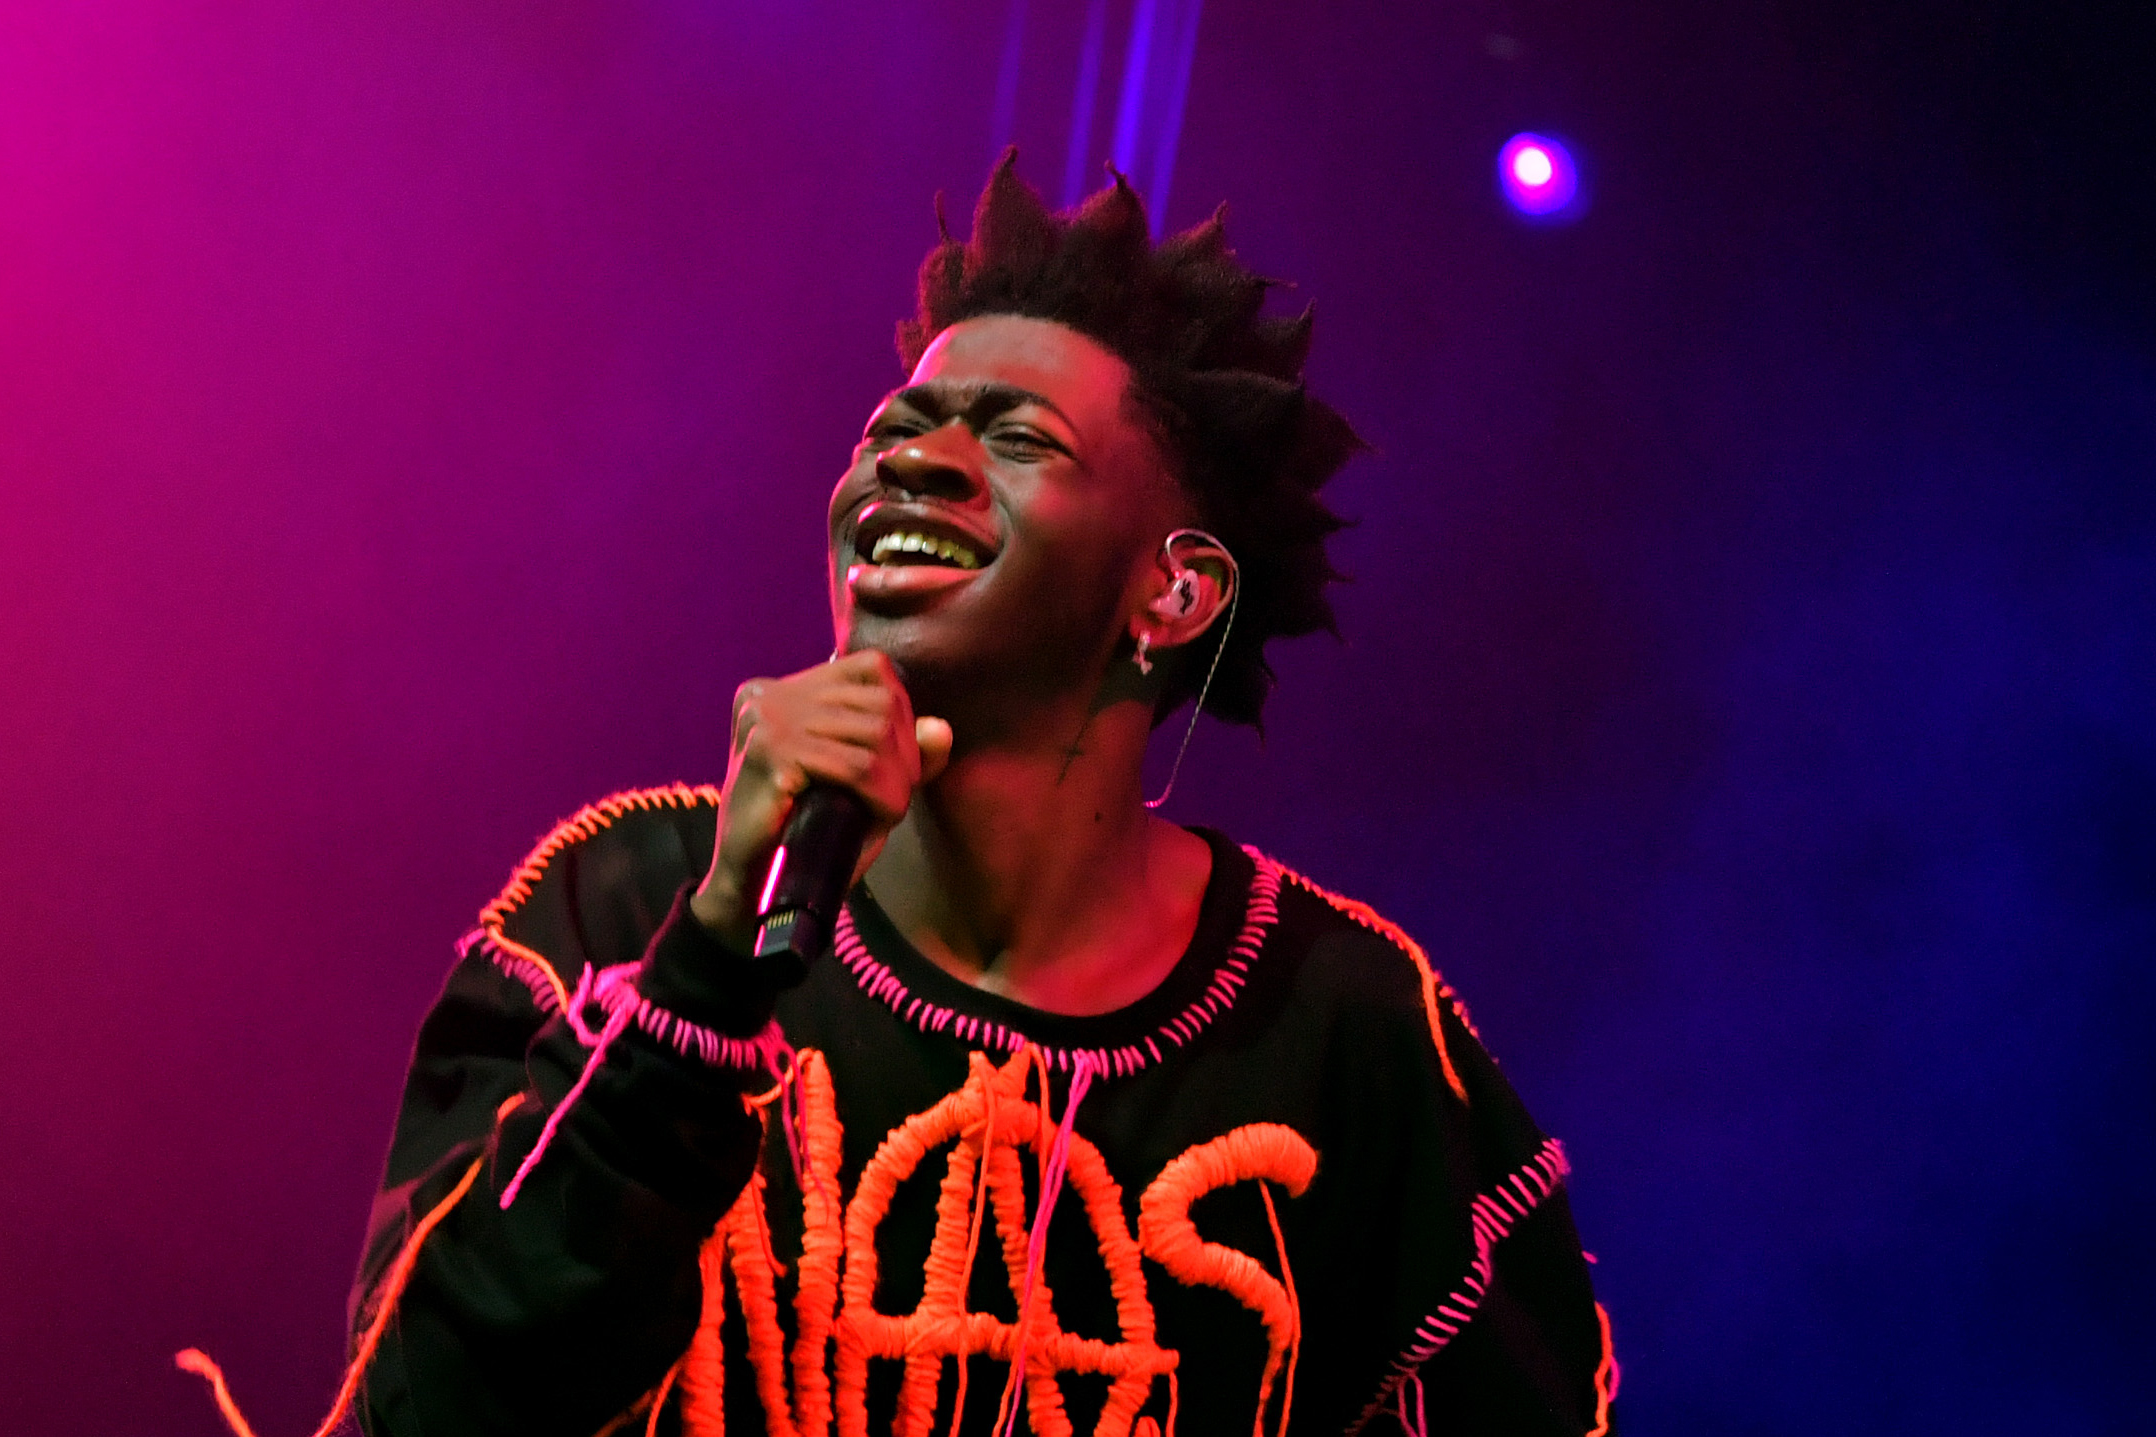 Lil Nas X raises money for LGBTQ nonprofits with a 'baby registry'